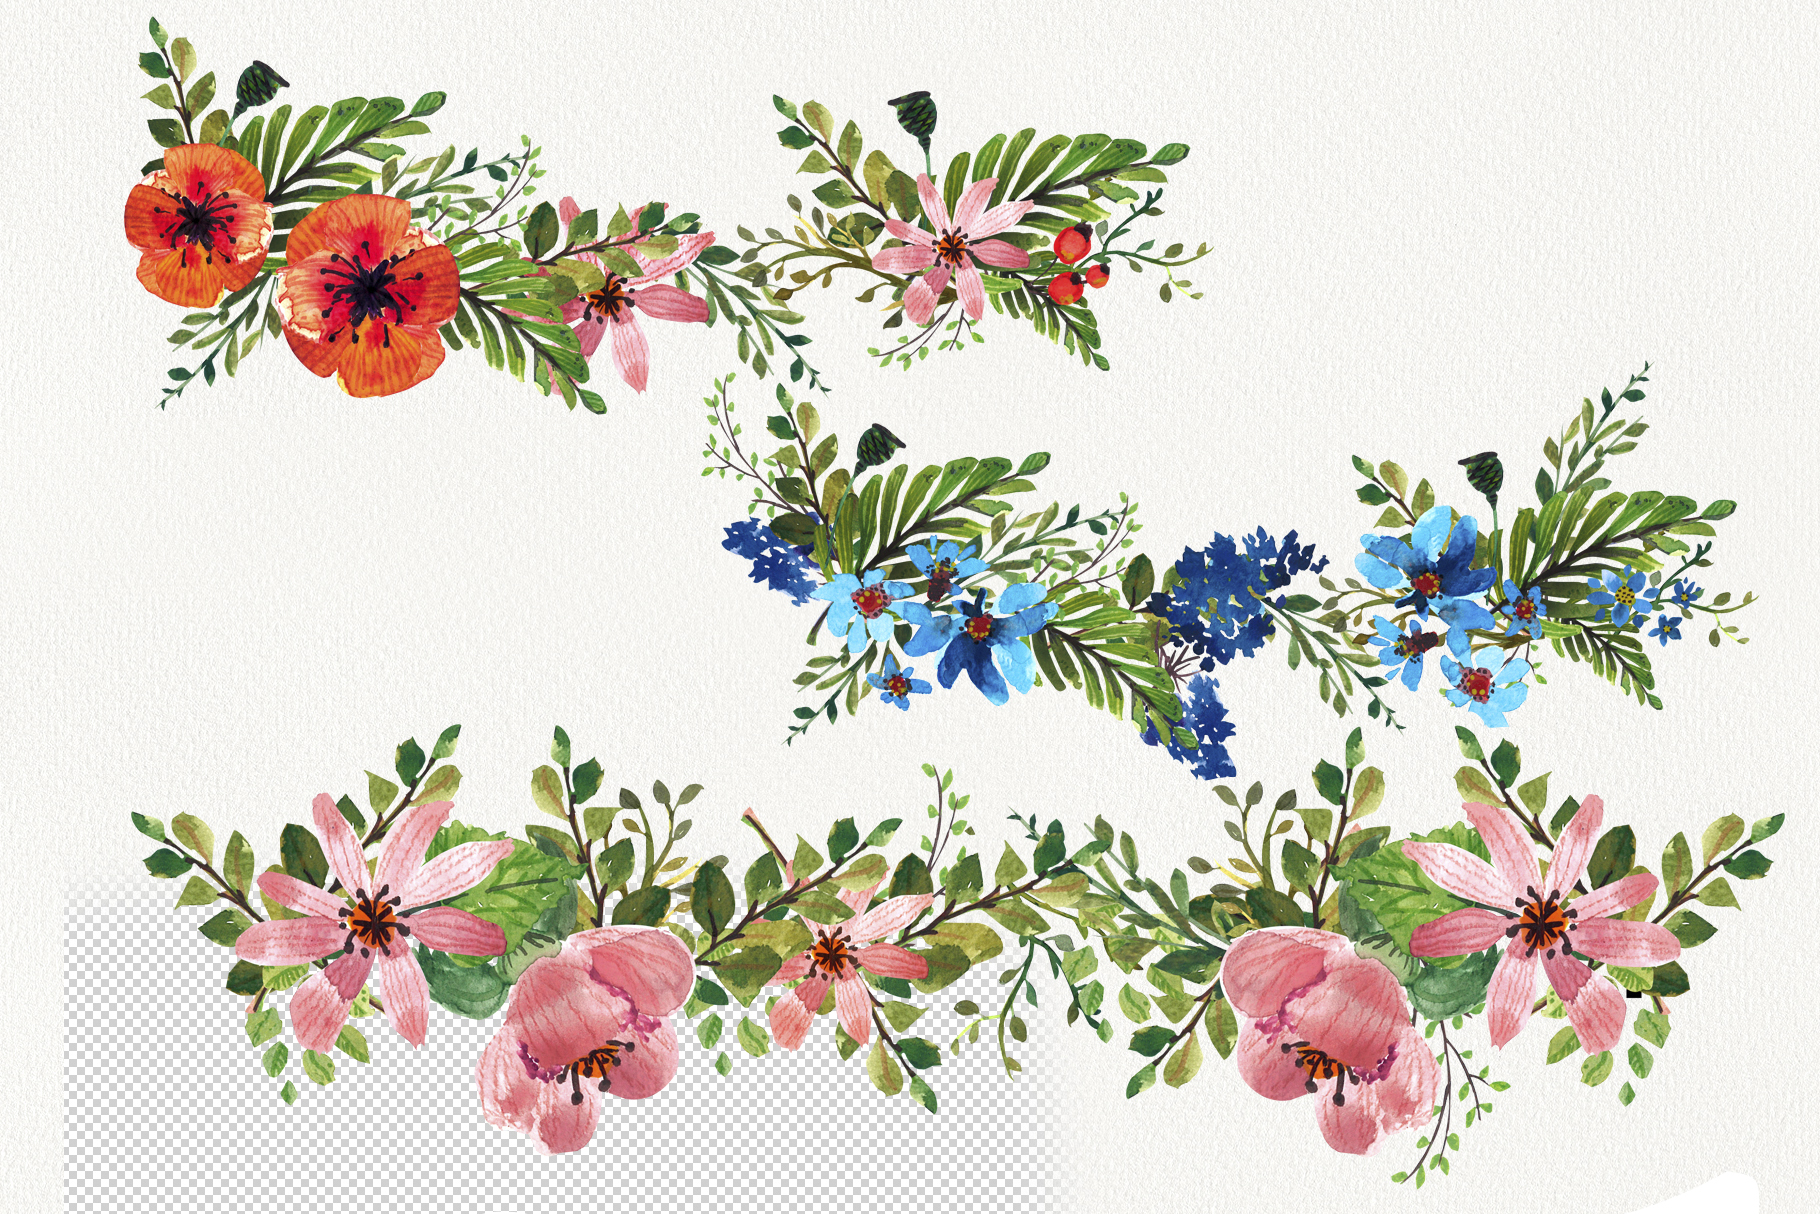 Flower Power watercolor pack set with frames wreath patterns example image 3